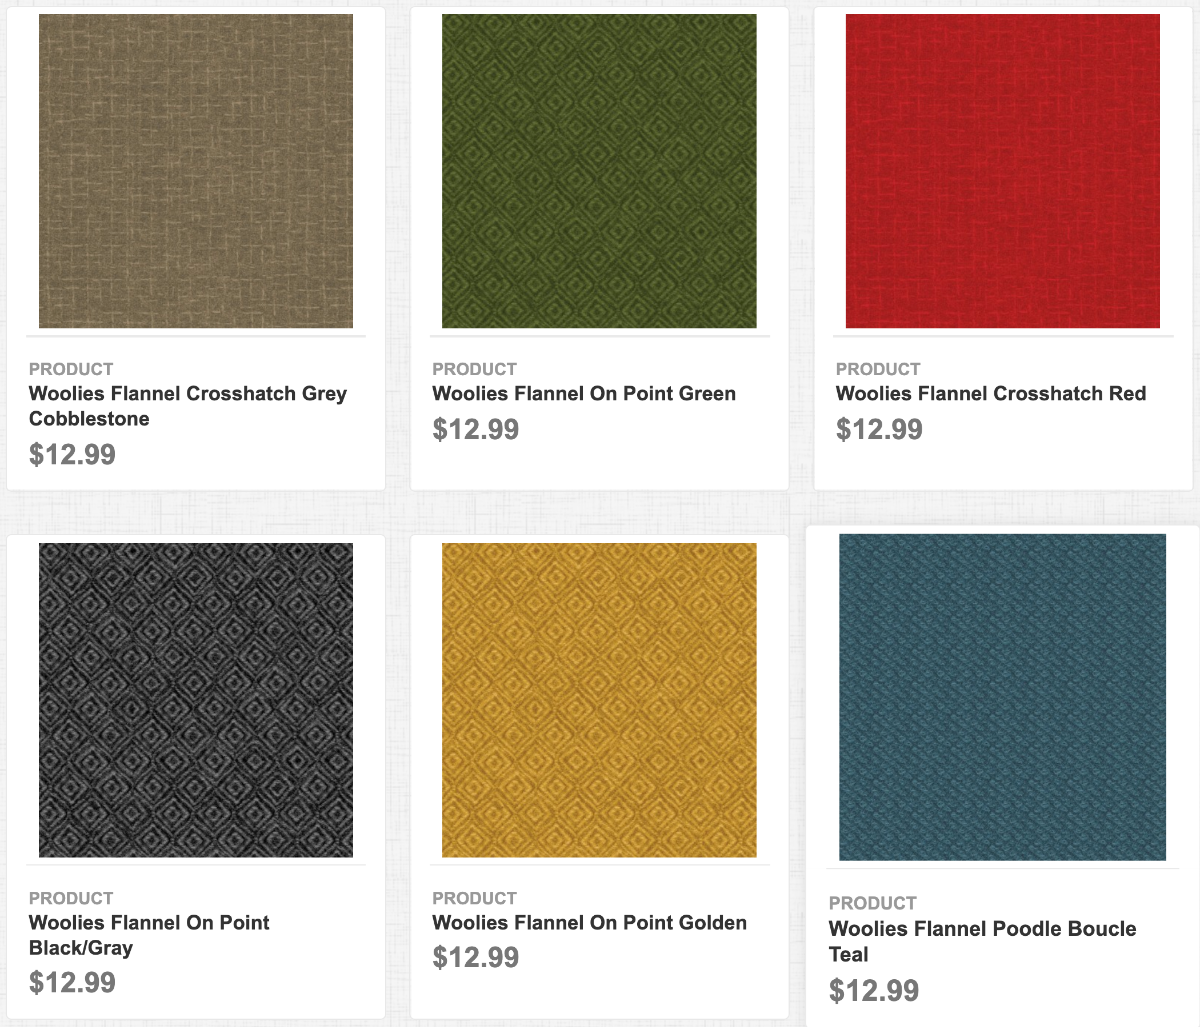 Woolies Flannel Crosshatch Grey Cobblestone, On Point Green, Crosshatch Red, On Point Black/Gray, On Point Golden, and Poodle Boucle Teal